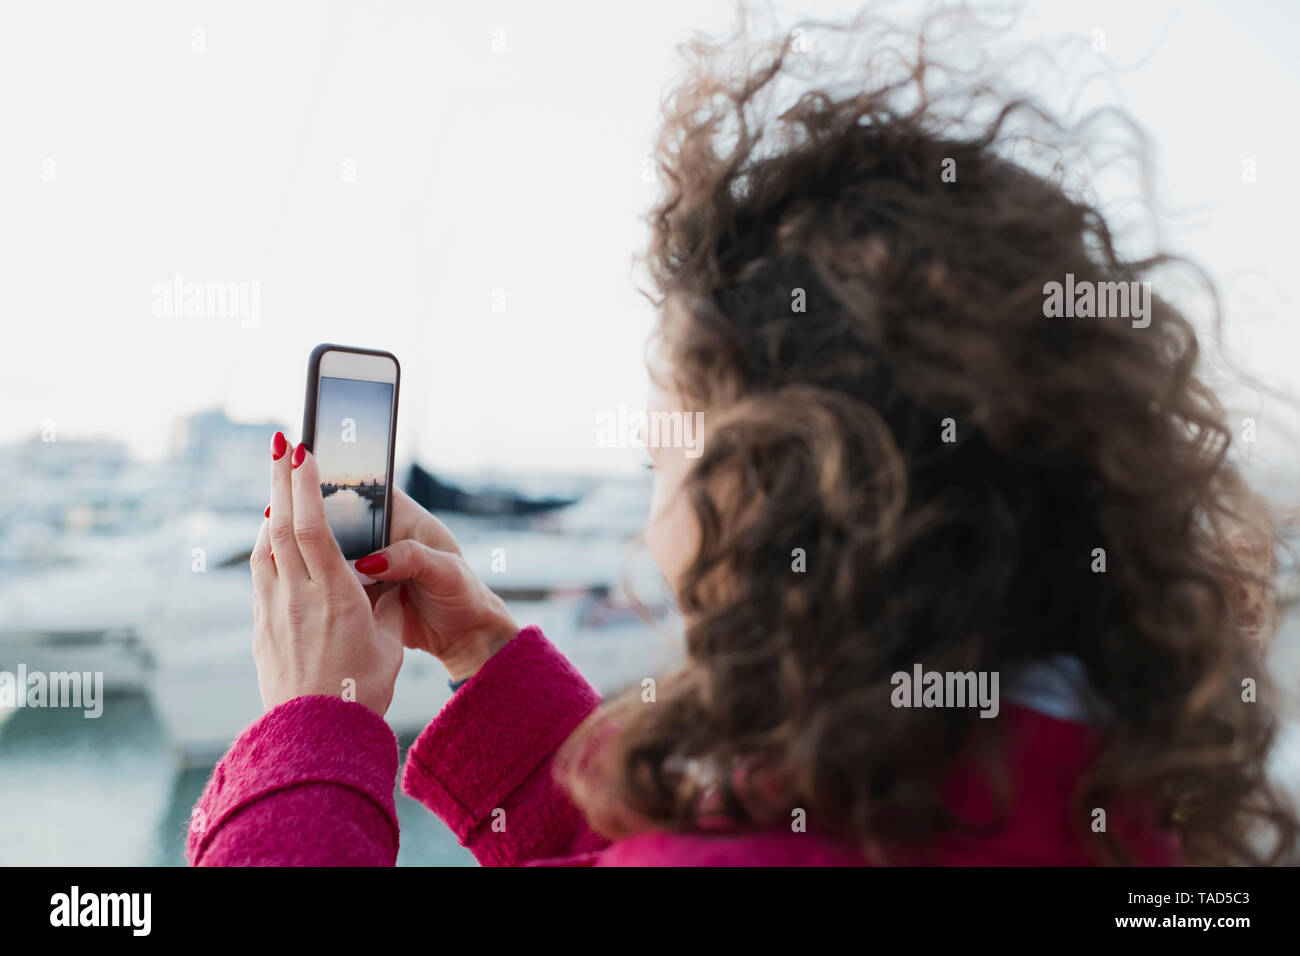 Woman with curly hair taking a cell phone picture - Stock Image